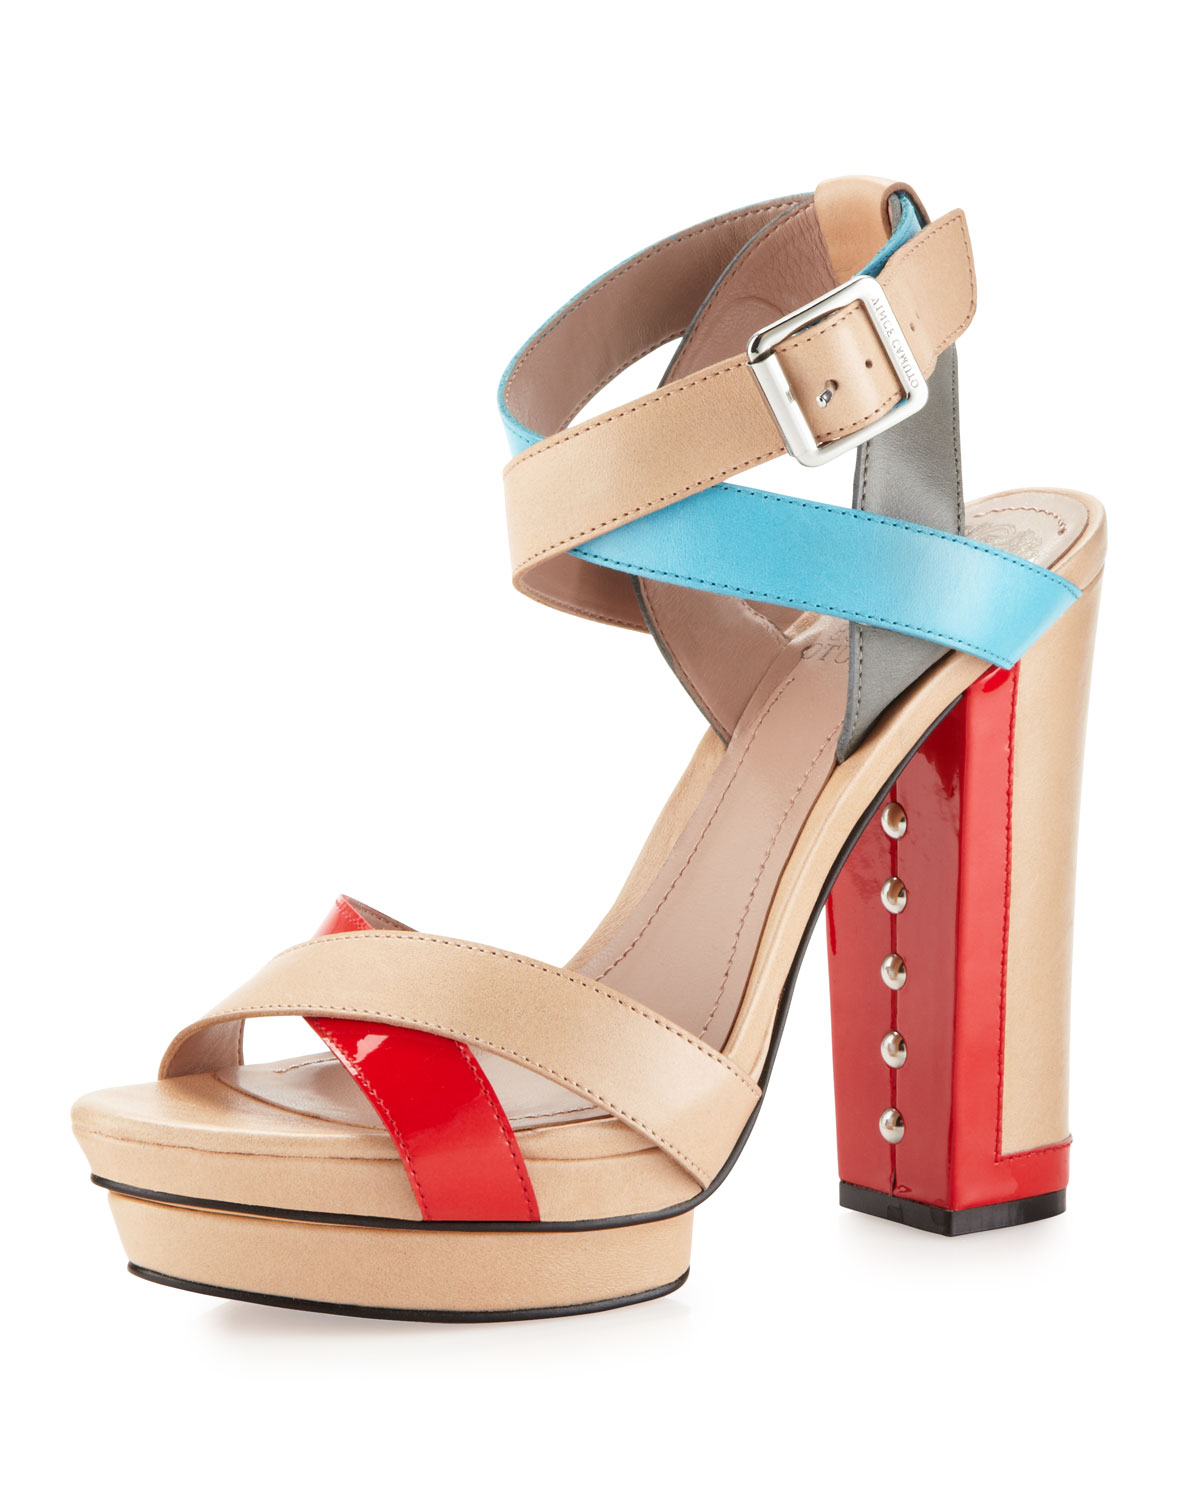 fdf6577bfc25 Lyst - Vince Camuto Pamir Colorblock Thick Heel Platform Sandal in Blue